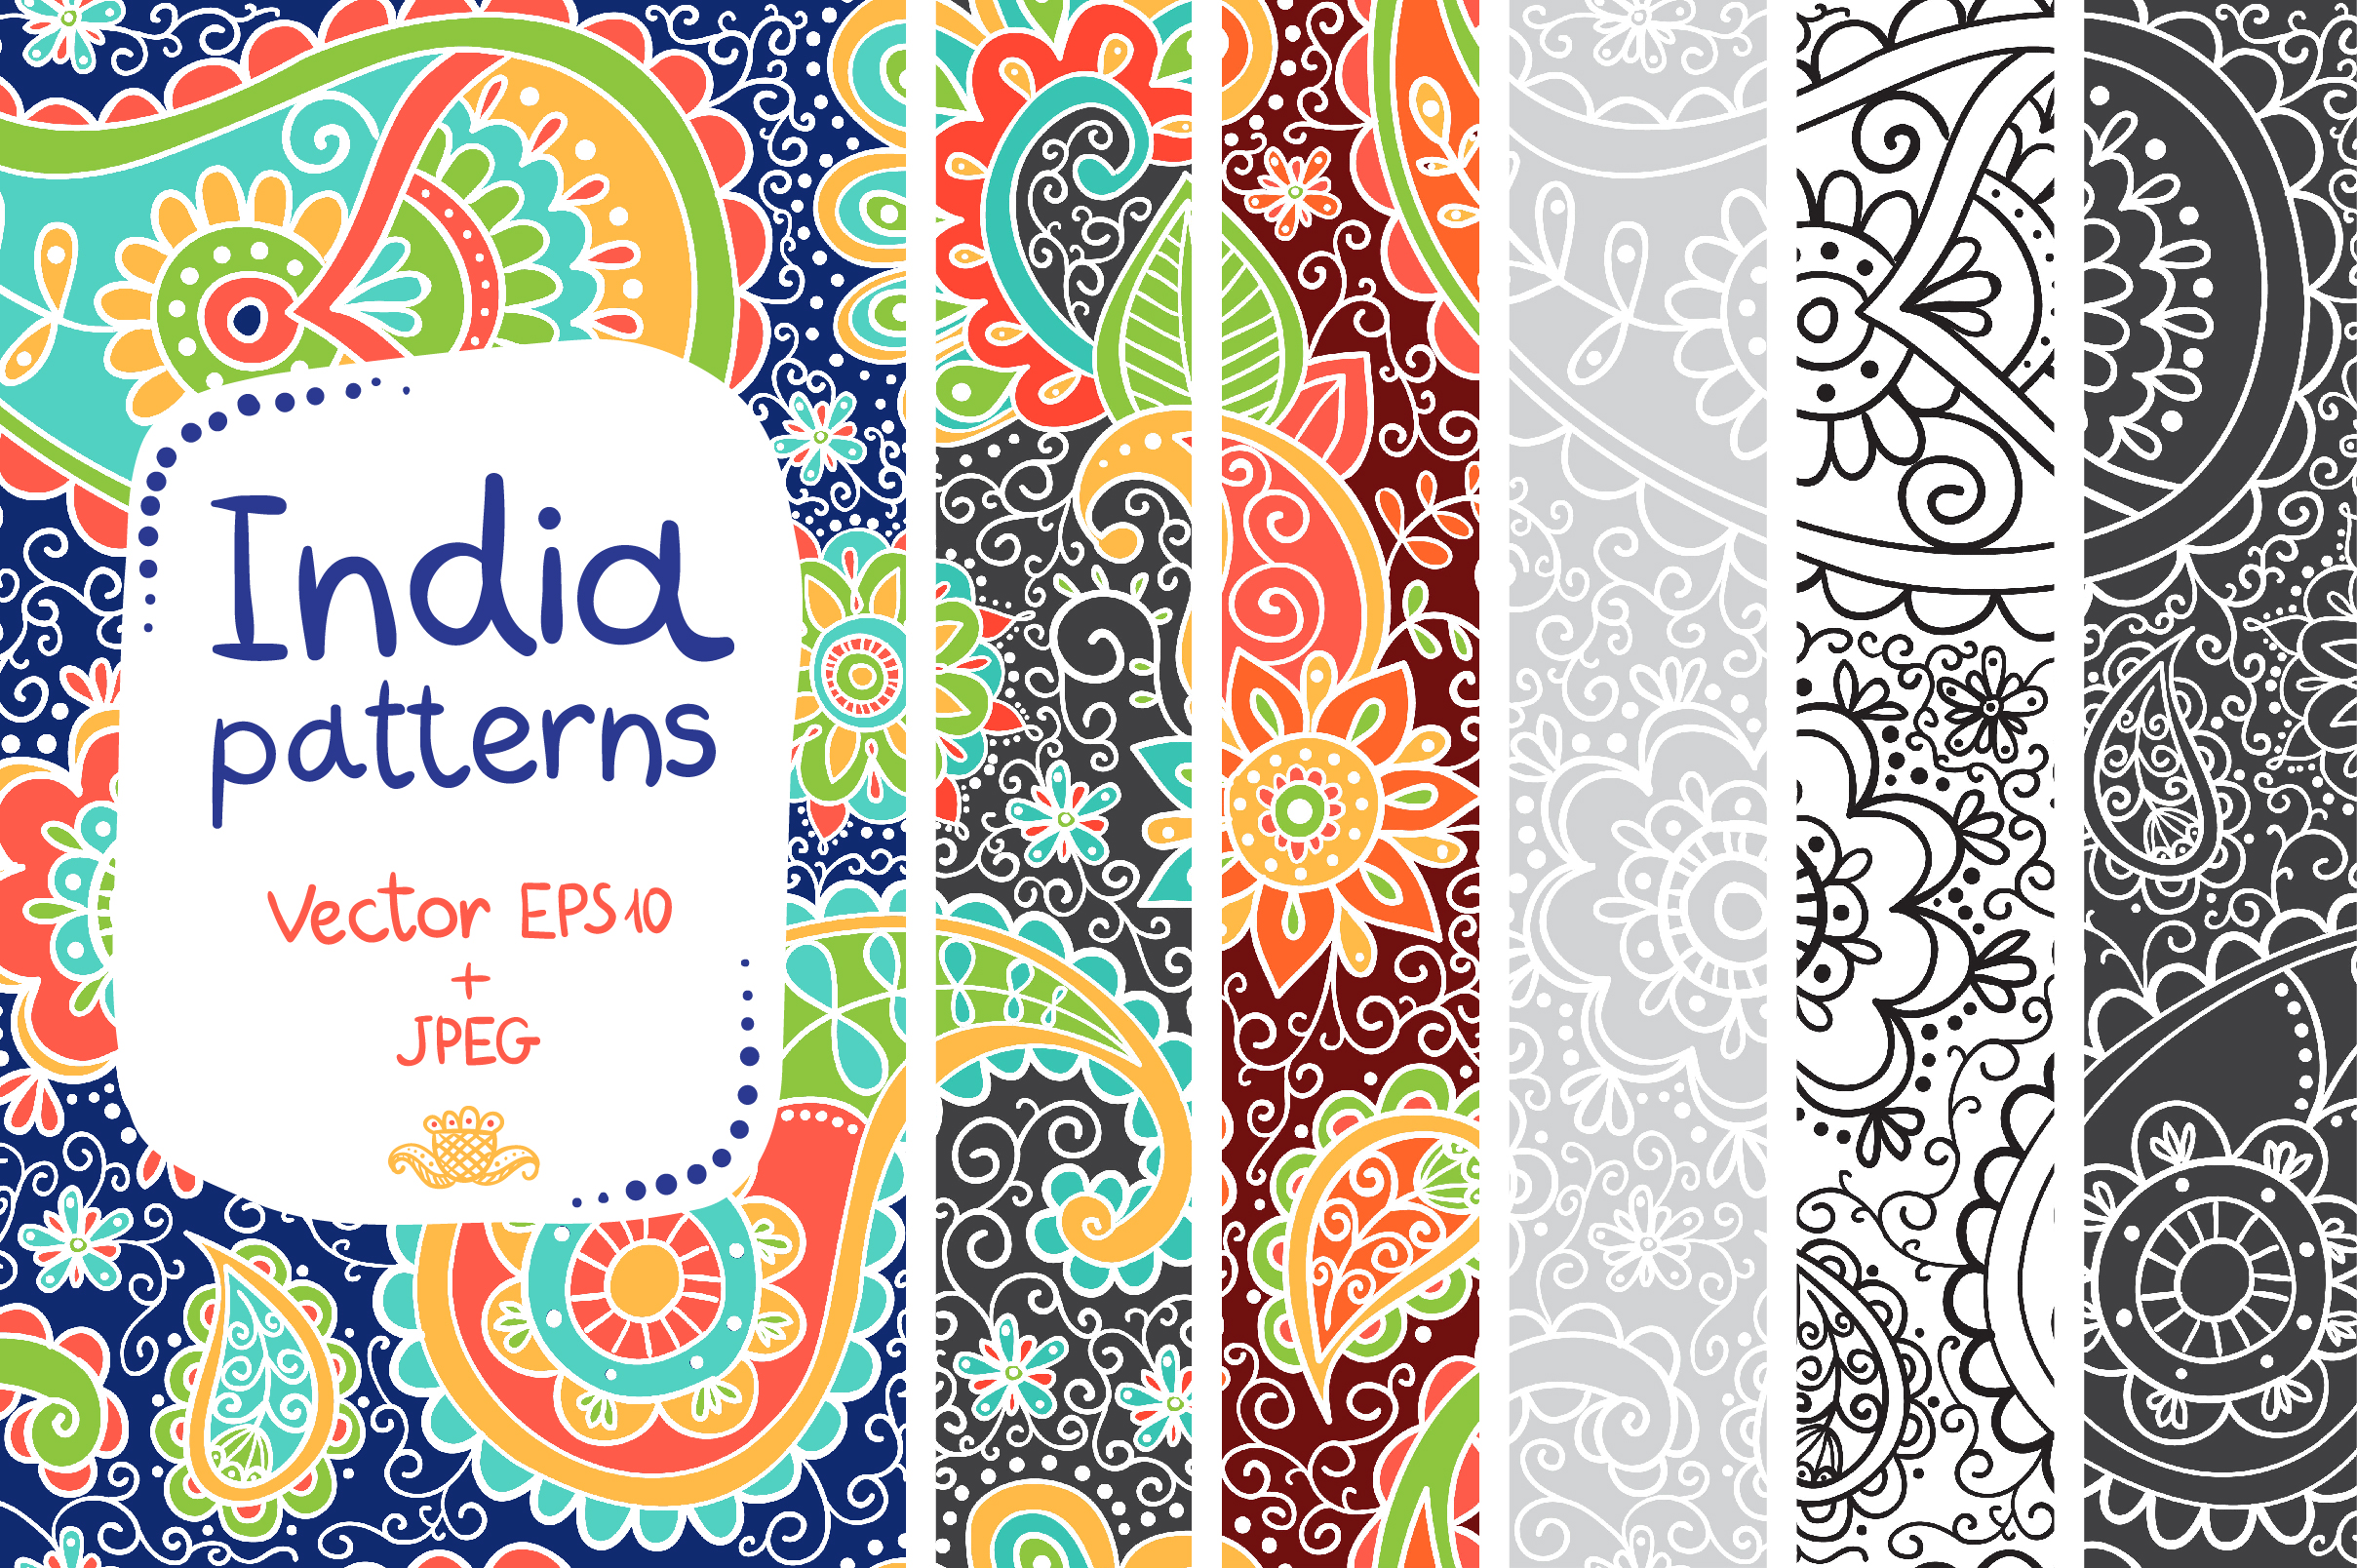 Indian patterns vector - photo#11